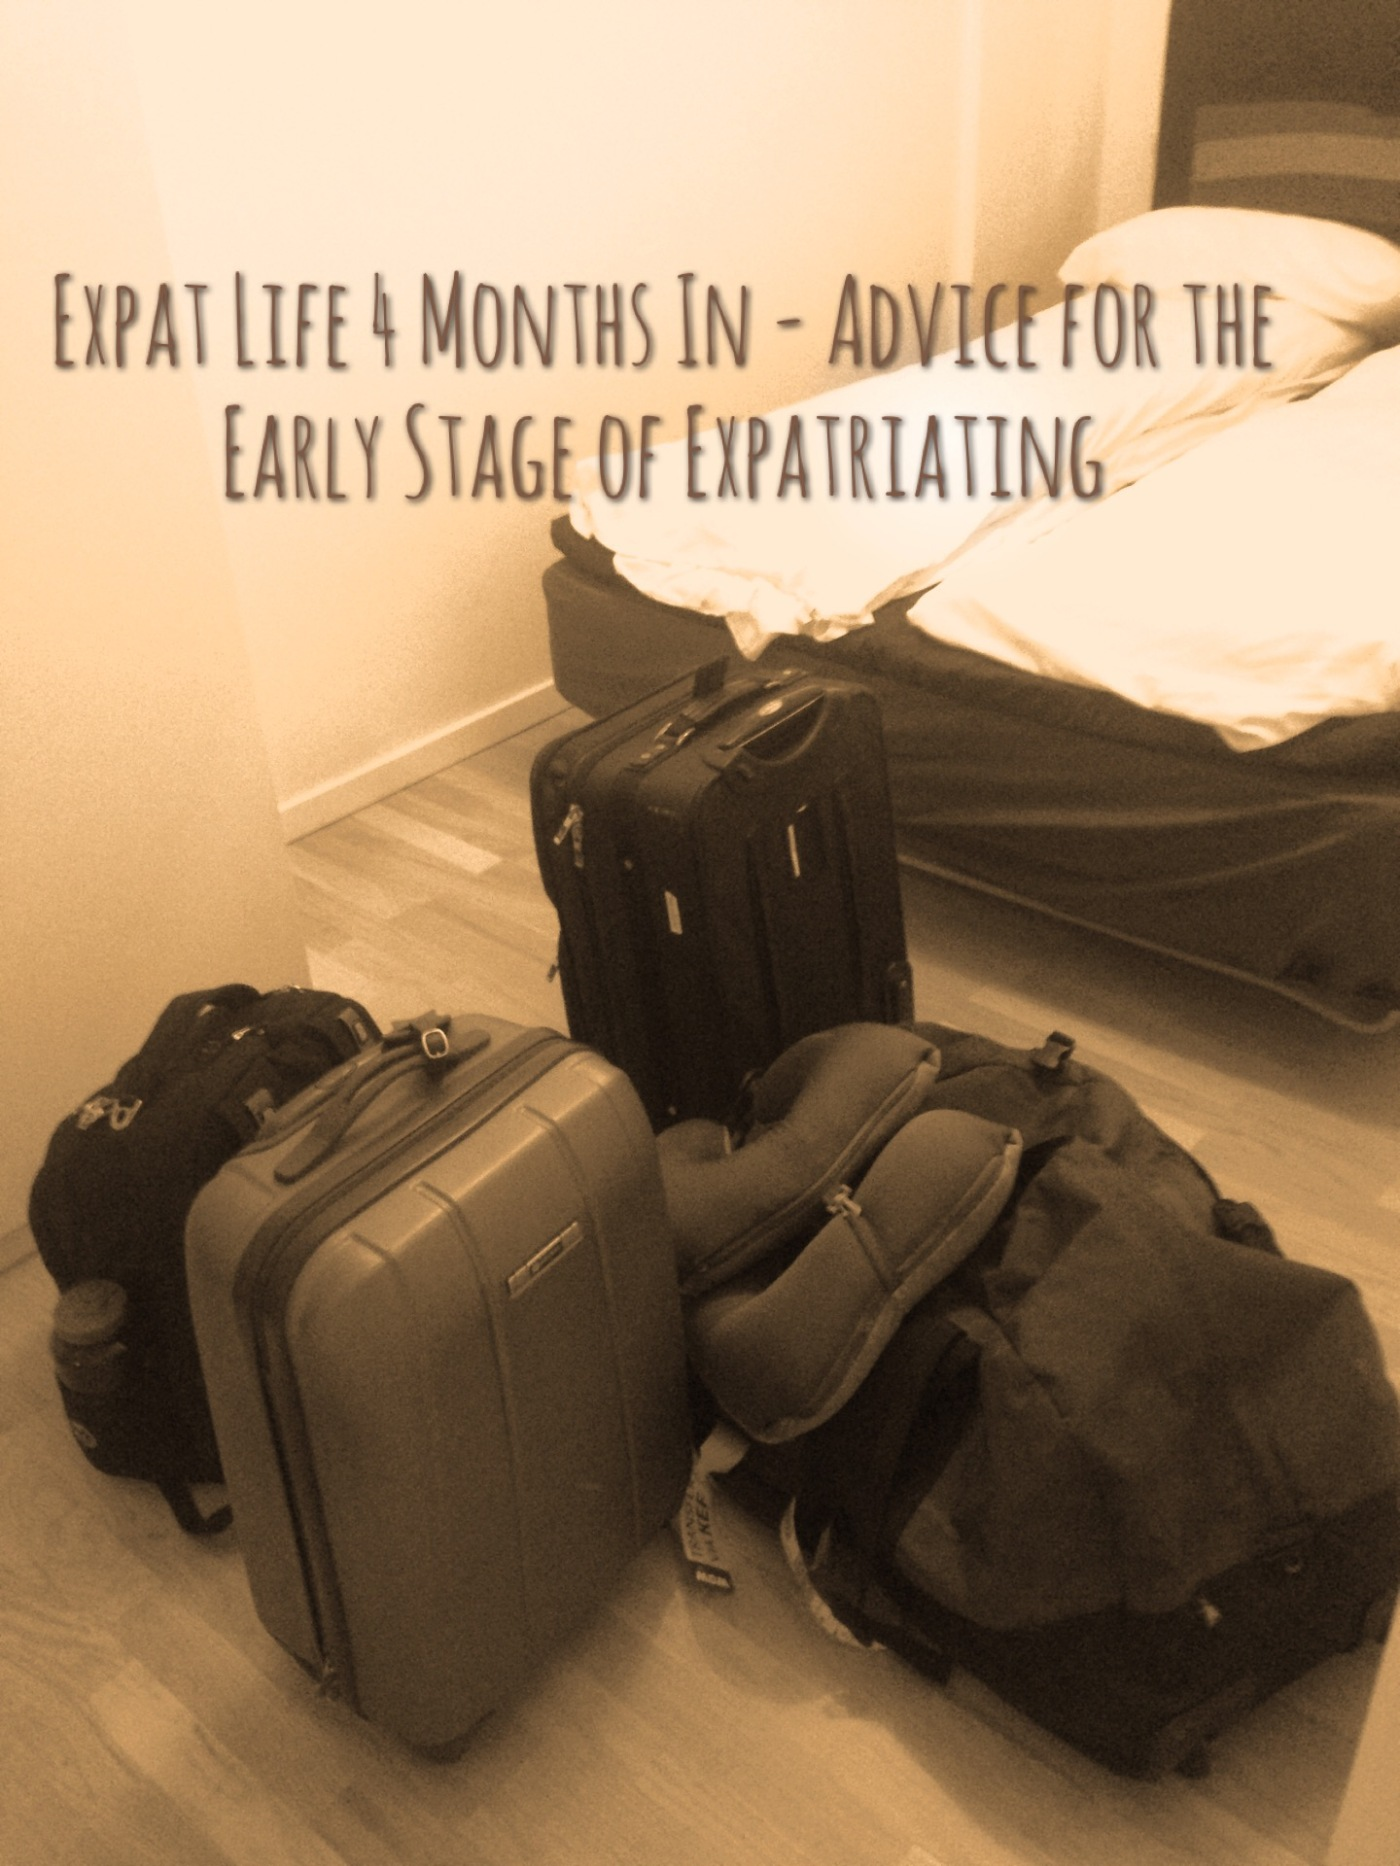 Expat Life - Advice for the early stage of expatriating